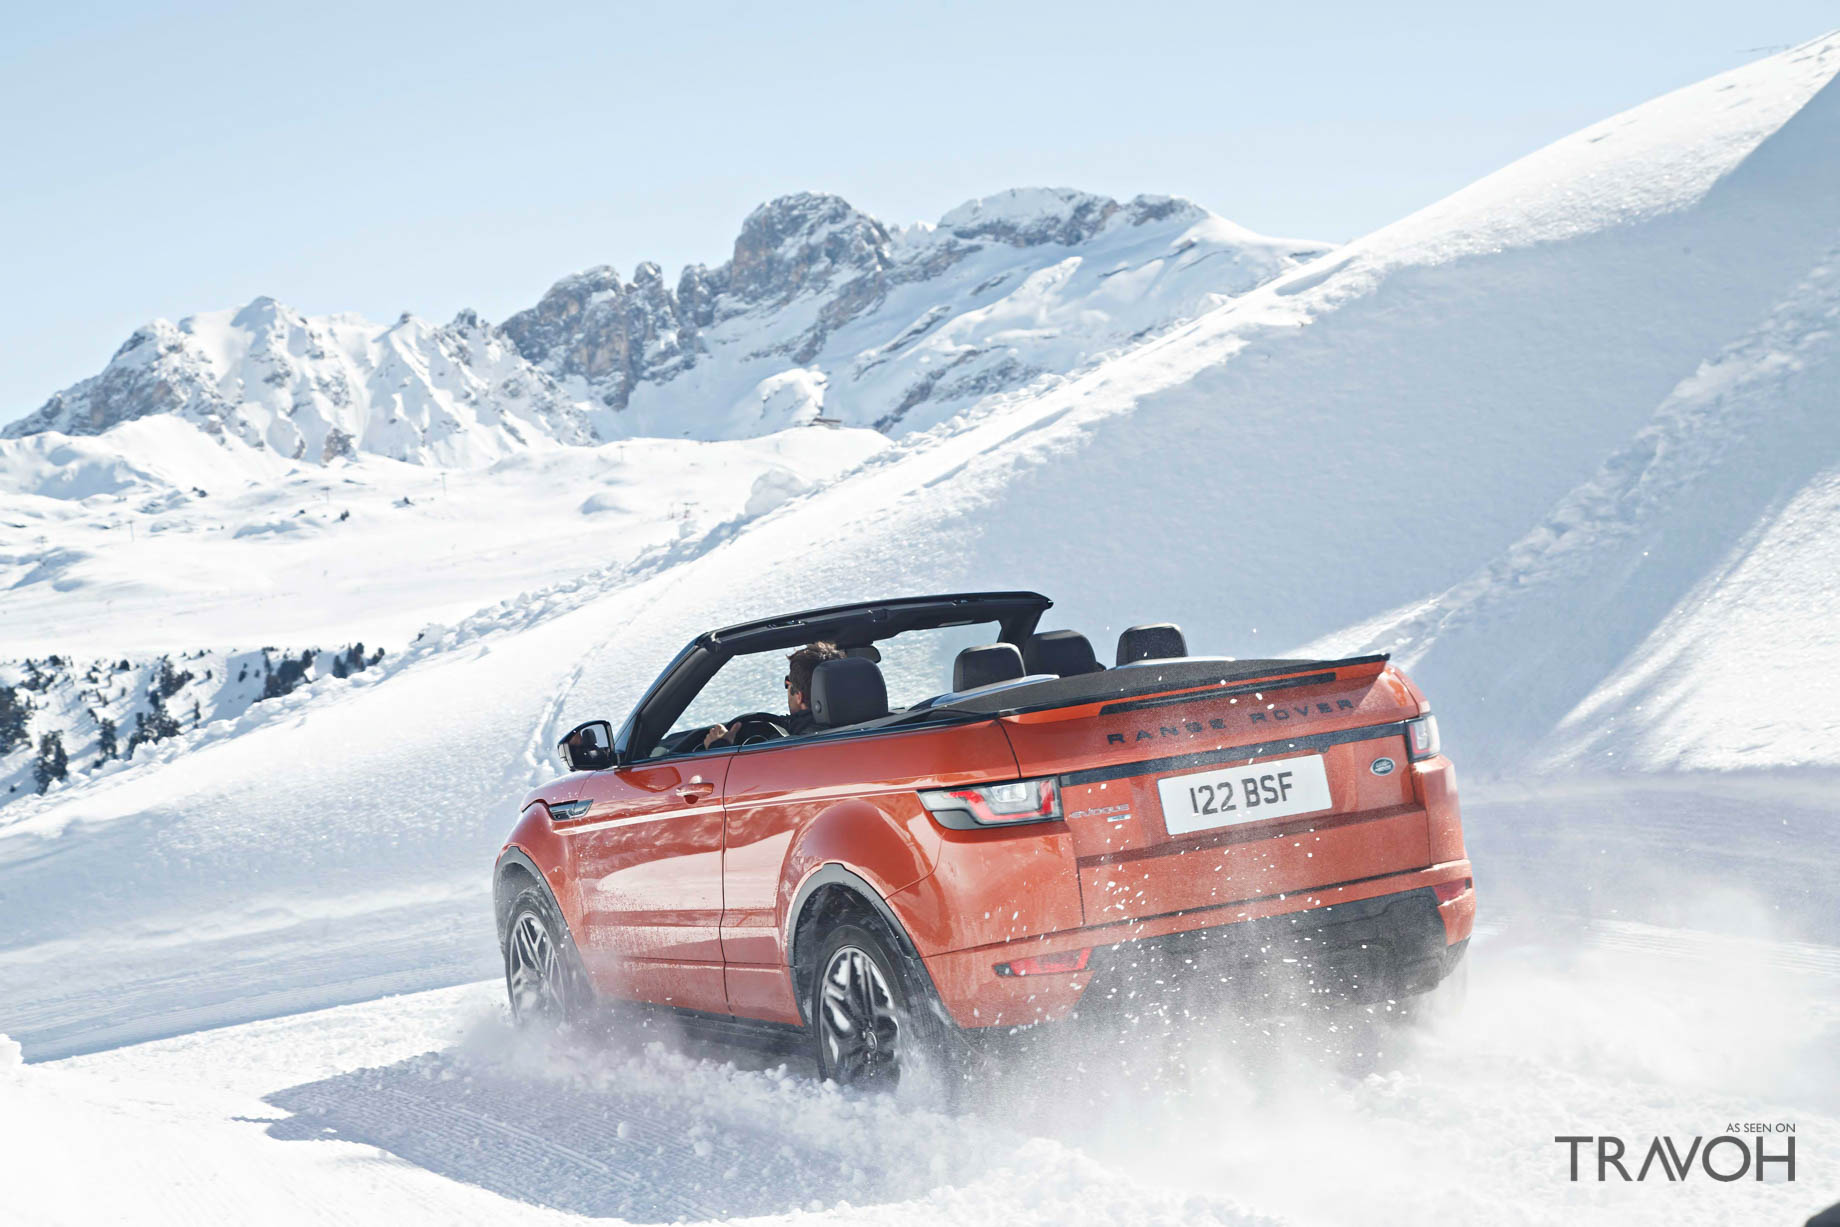 Luxury Car Rental - The 10 Best Off-Piste Winter Activities in Courchevel, France